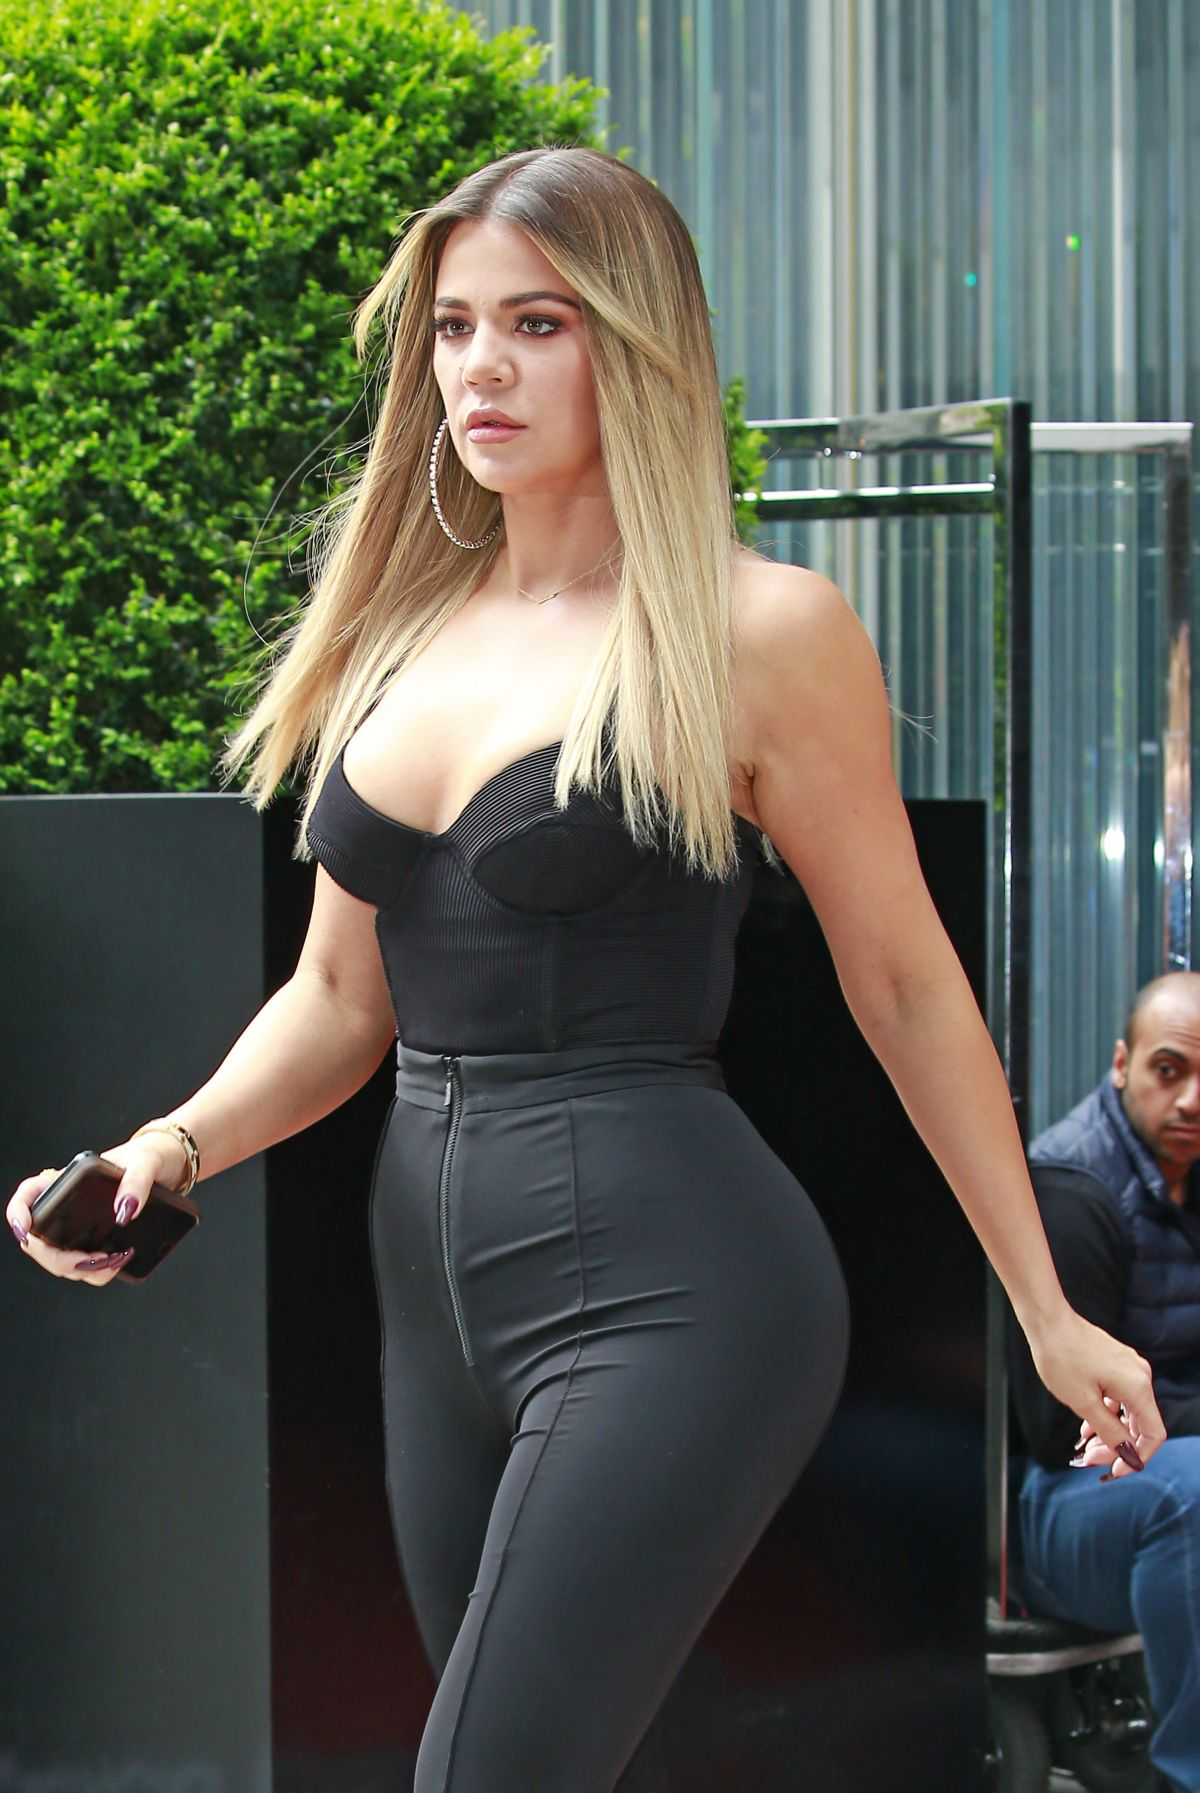 khloe kardashian - photo #47